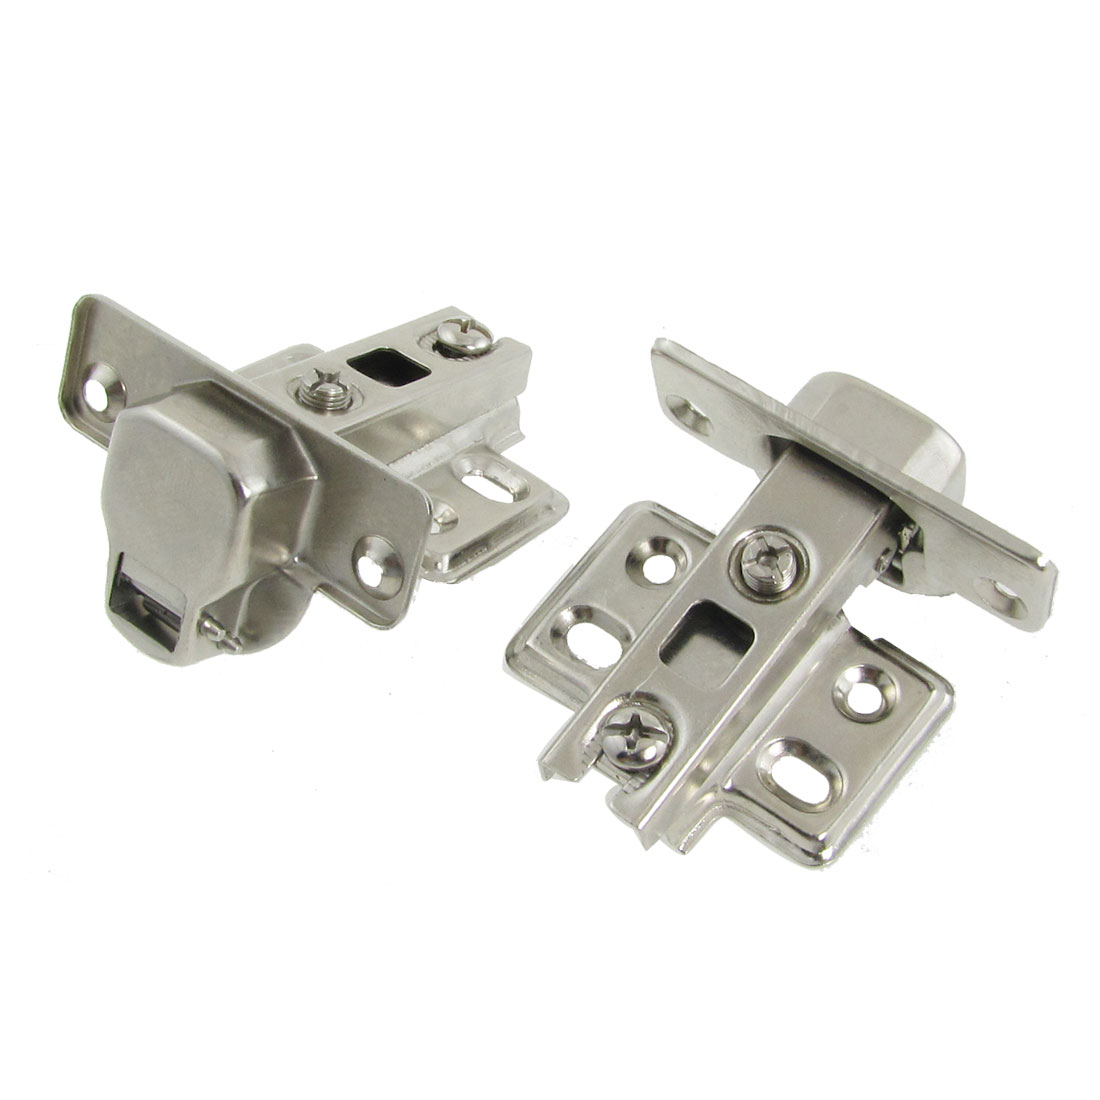 Pair Furniture Hardware Buffer Metal Concealed Cabinet Hinge